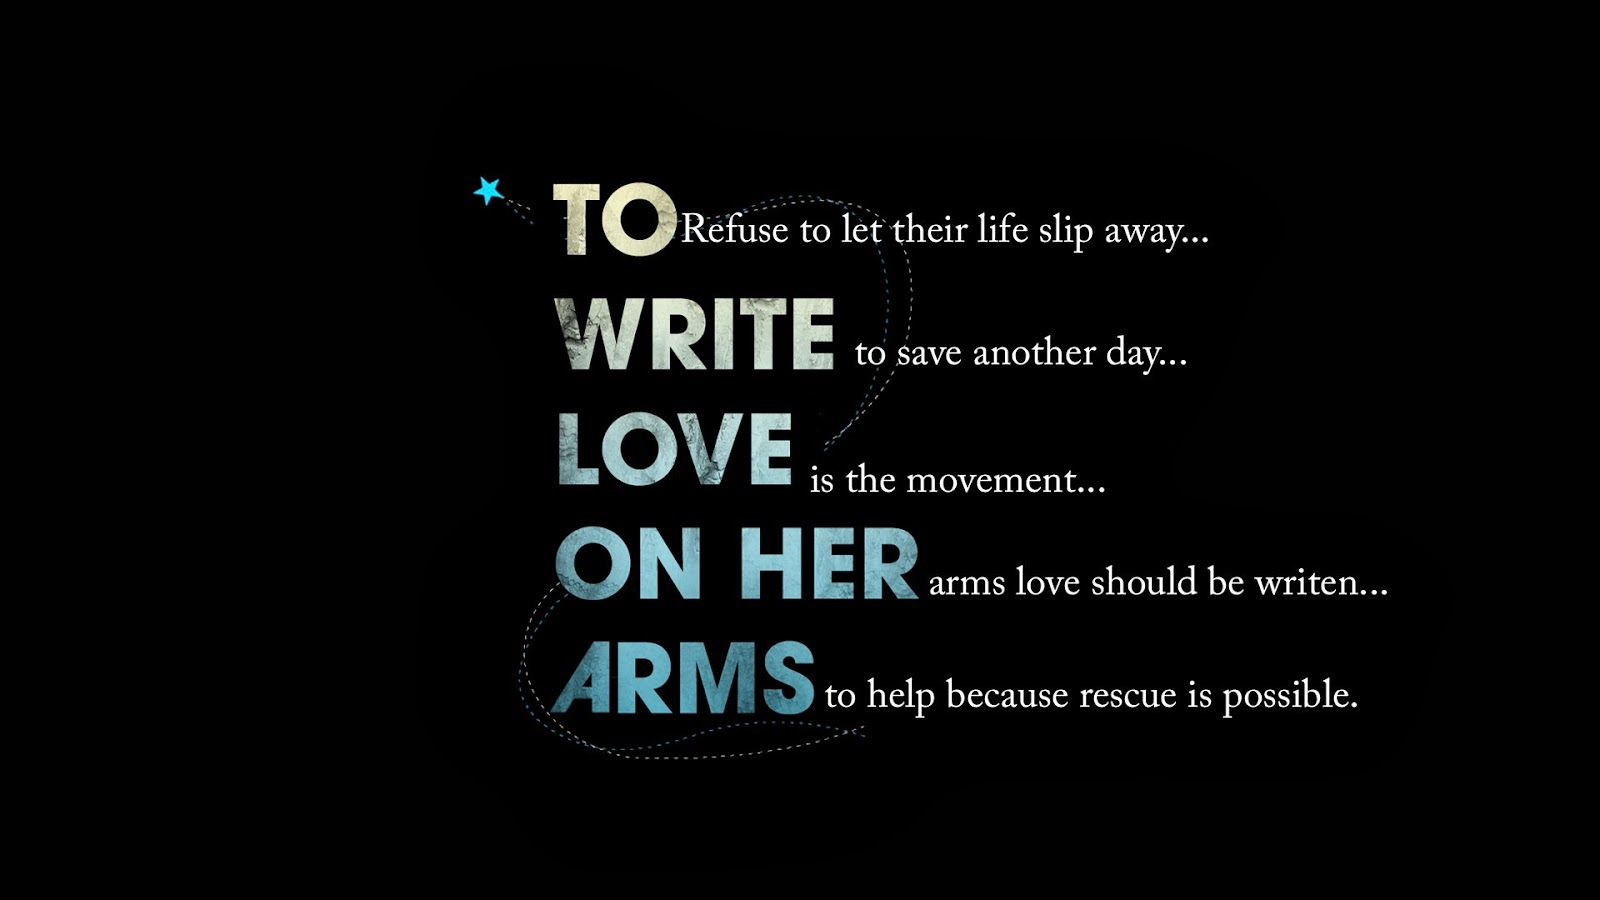 Single Dating: To Write Love On Her Arms